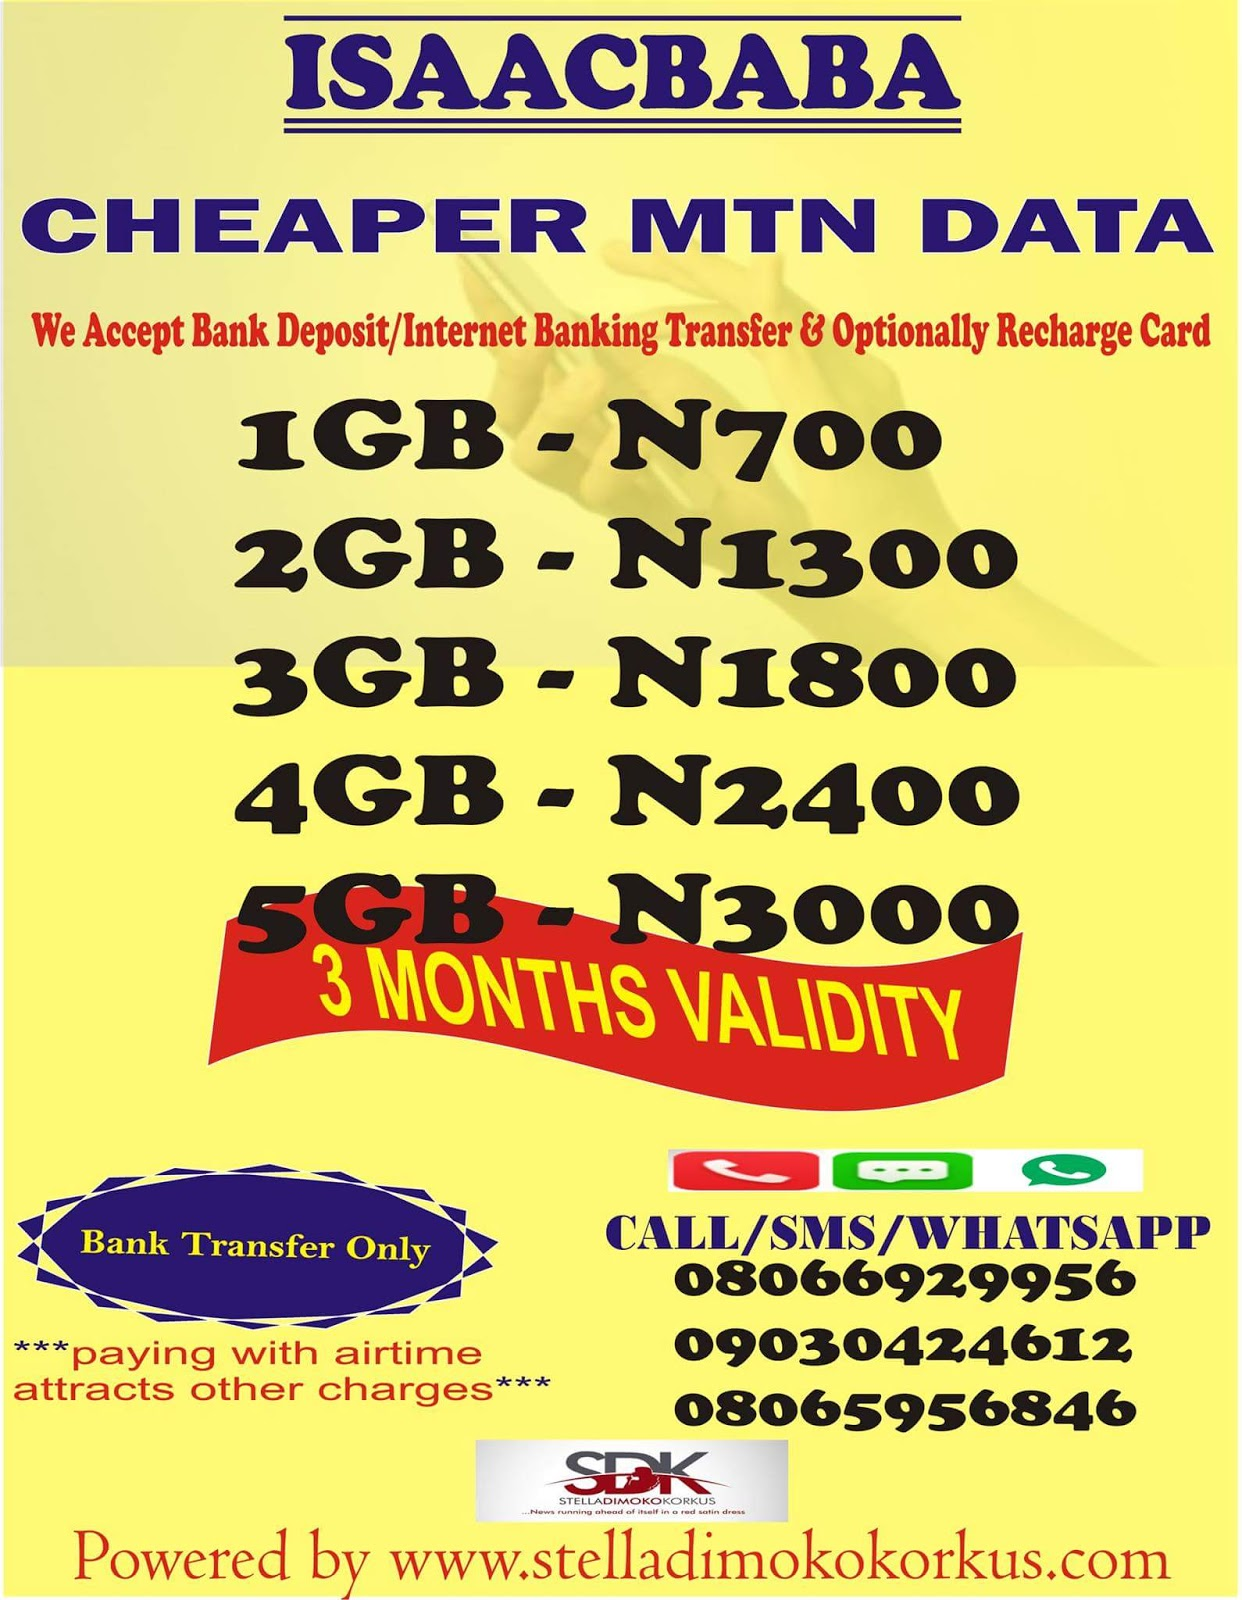 Stella Dimoko Korkus com: Cheaper Data Bundle Just For You